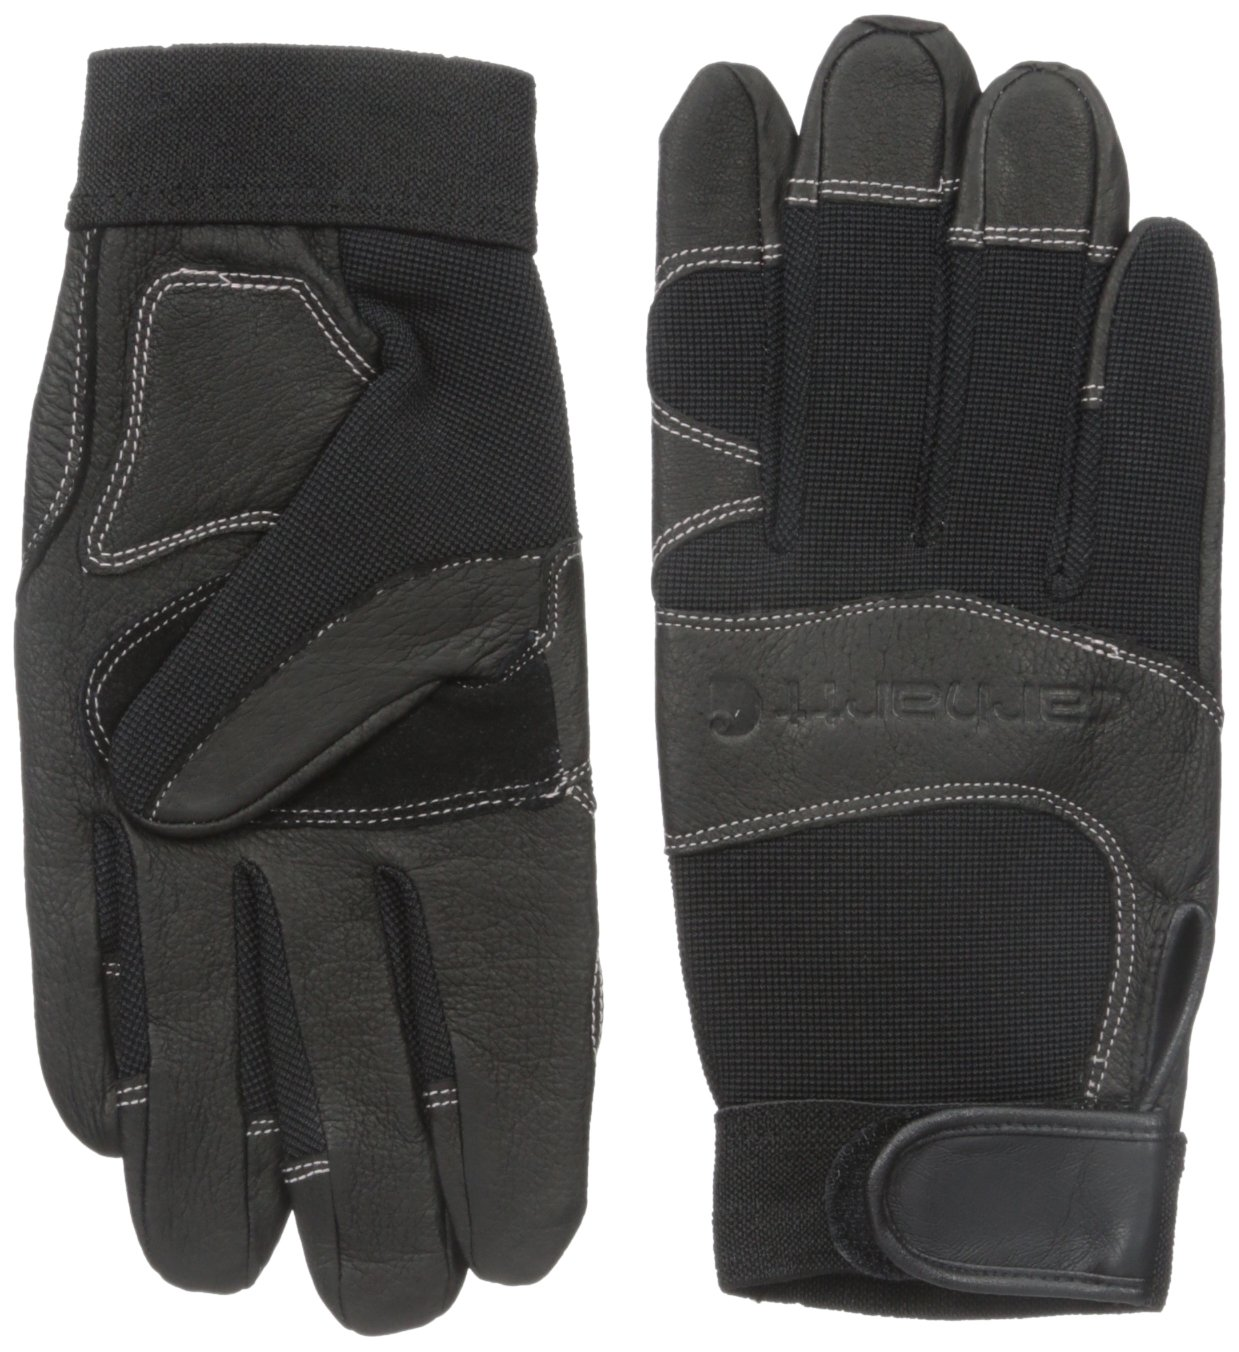 Carhartt Women's Dex II High Dexterity Work Glove with System 5 Palm and Knuckle Protection, black Winter/White Rose stitching, Small